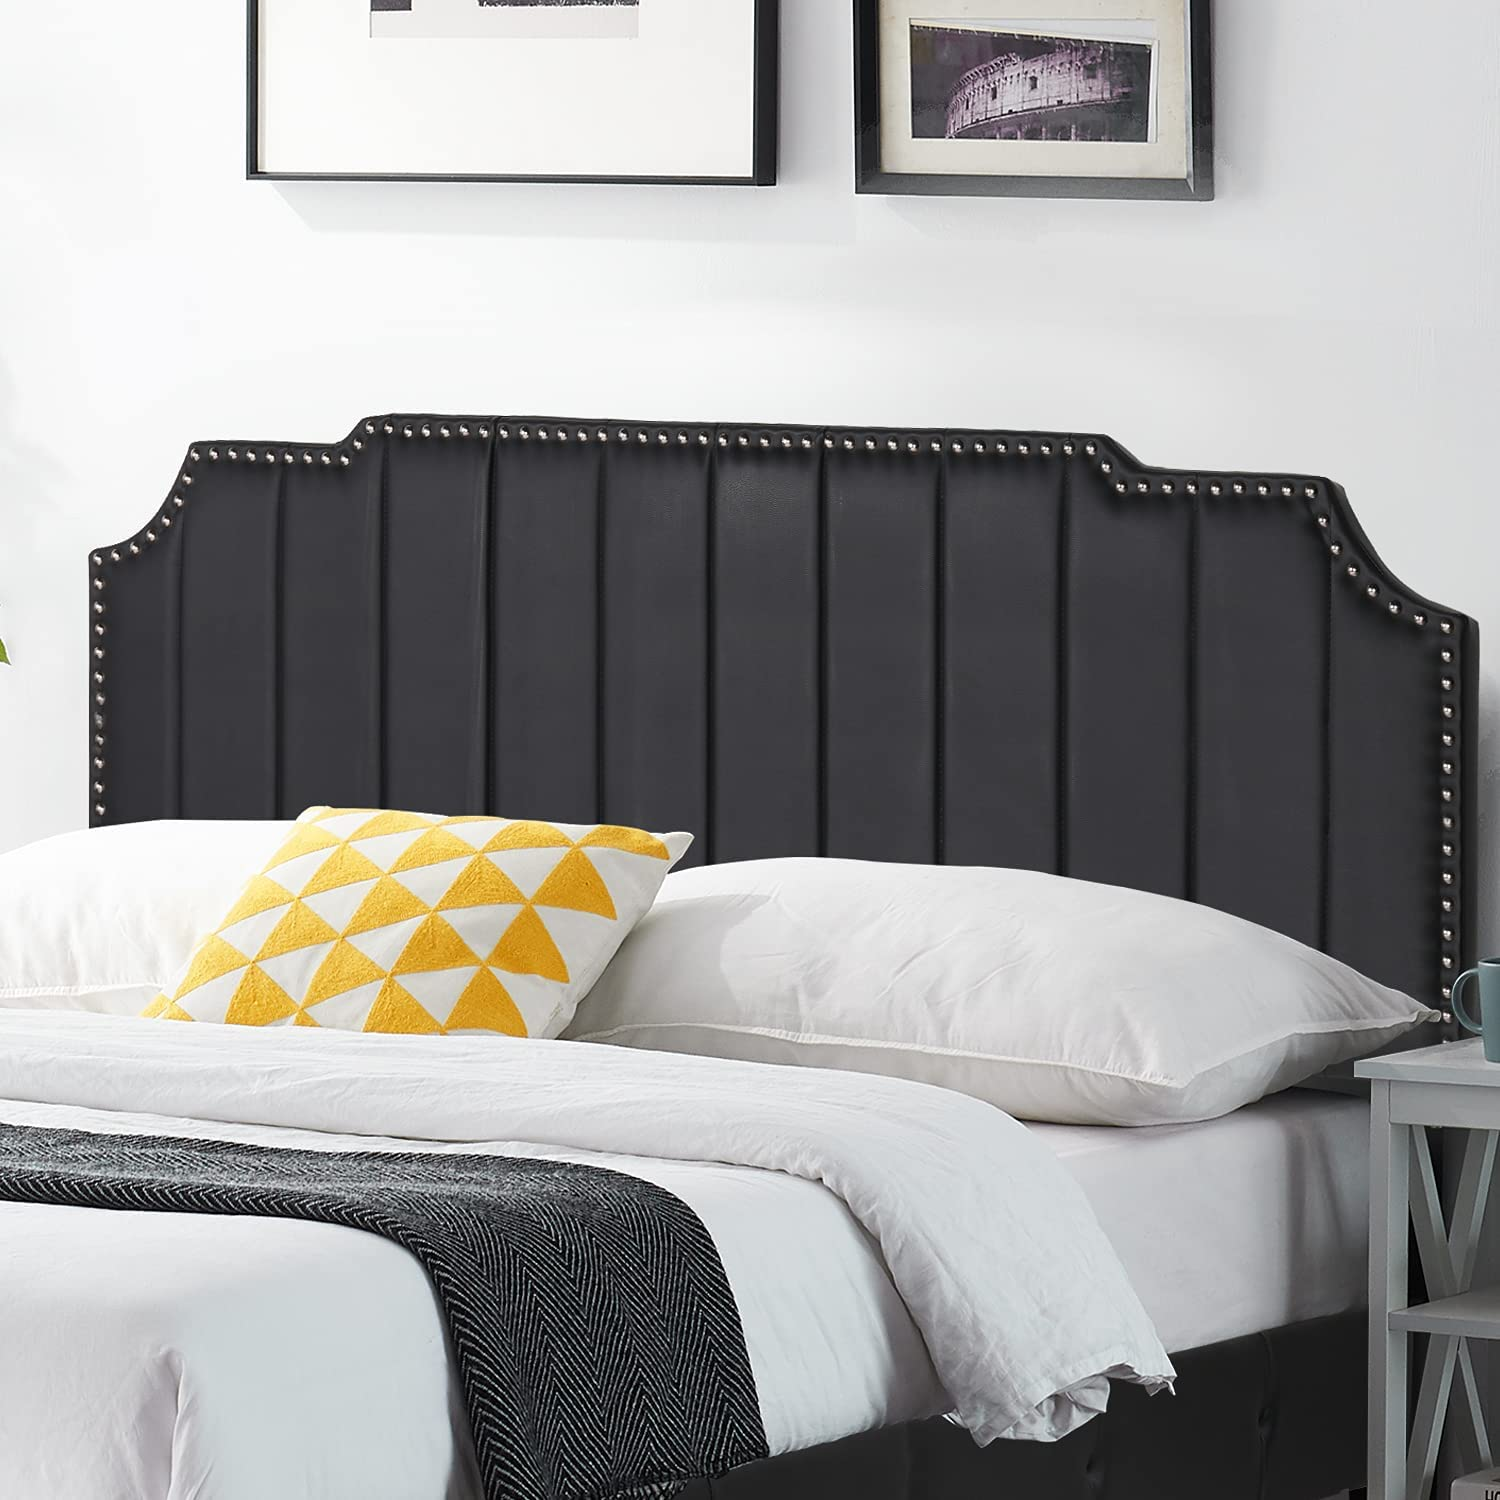 VECELO Faux Leather Max 59% OFF Headboard Black T Nail Heaboards Upholstered Large discharge sale